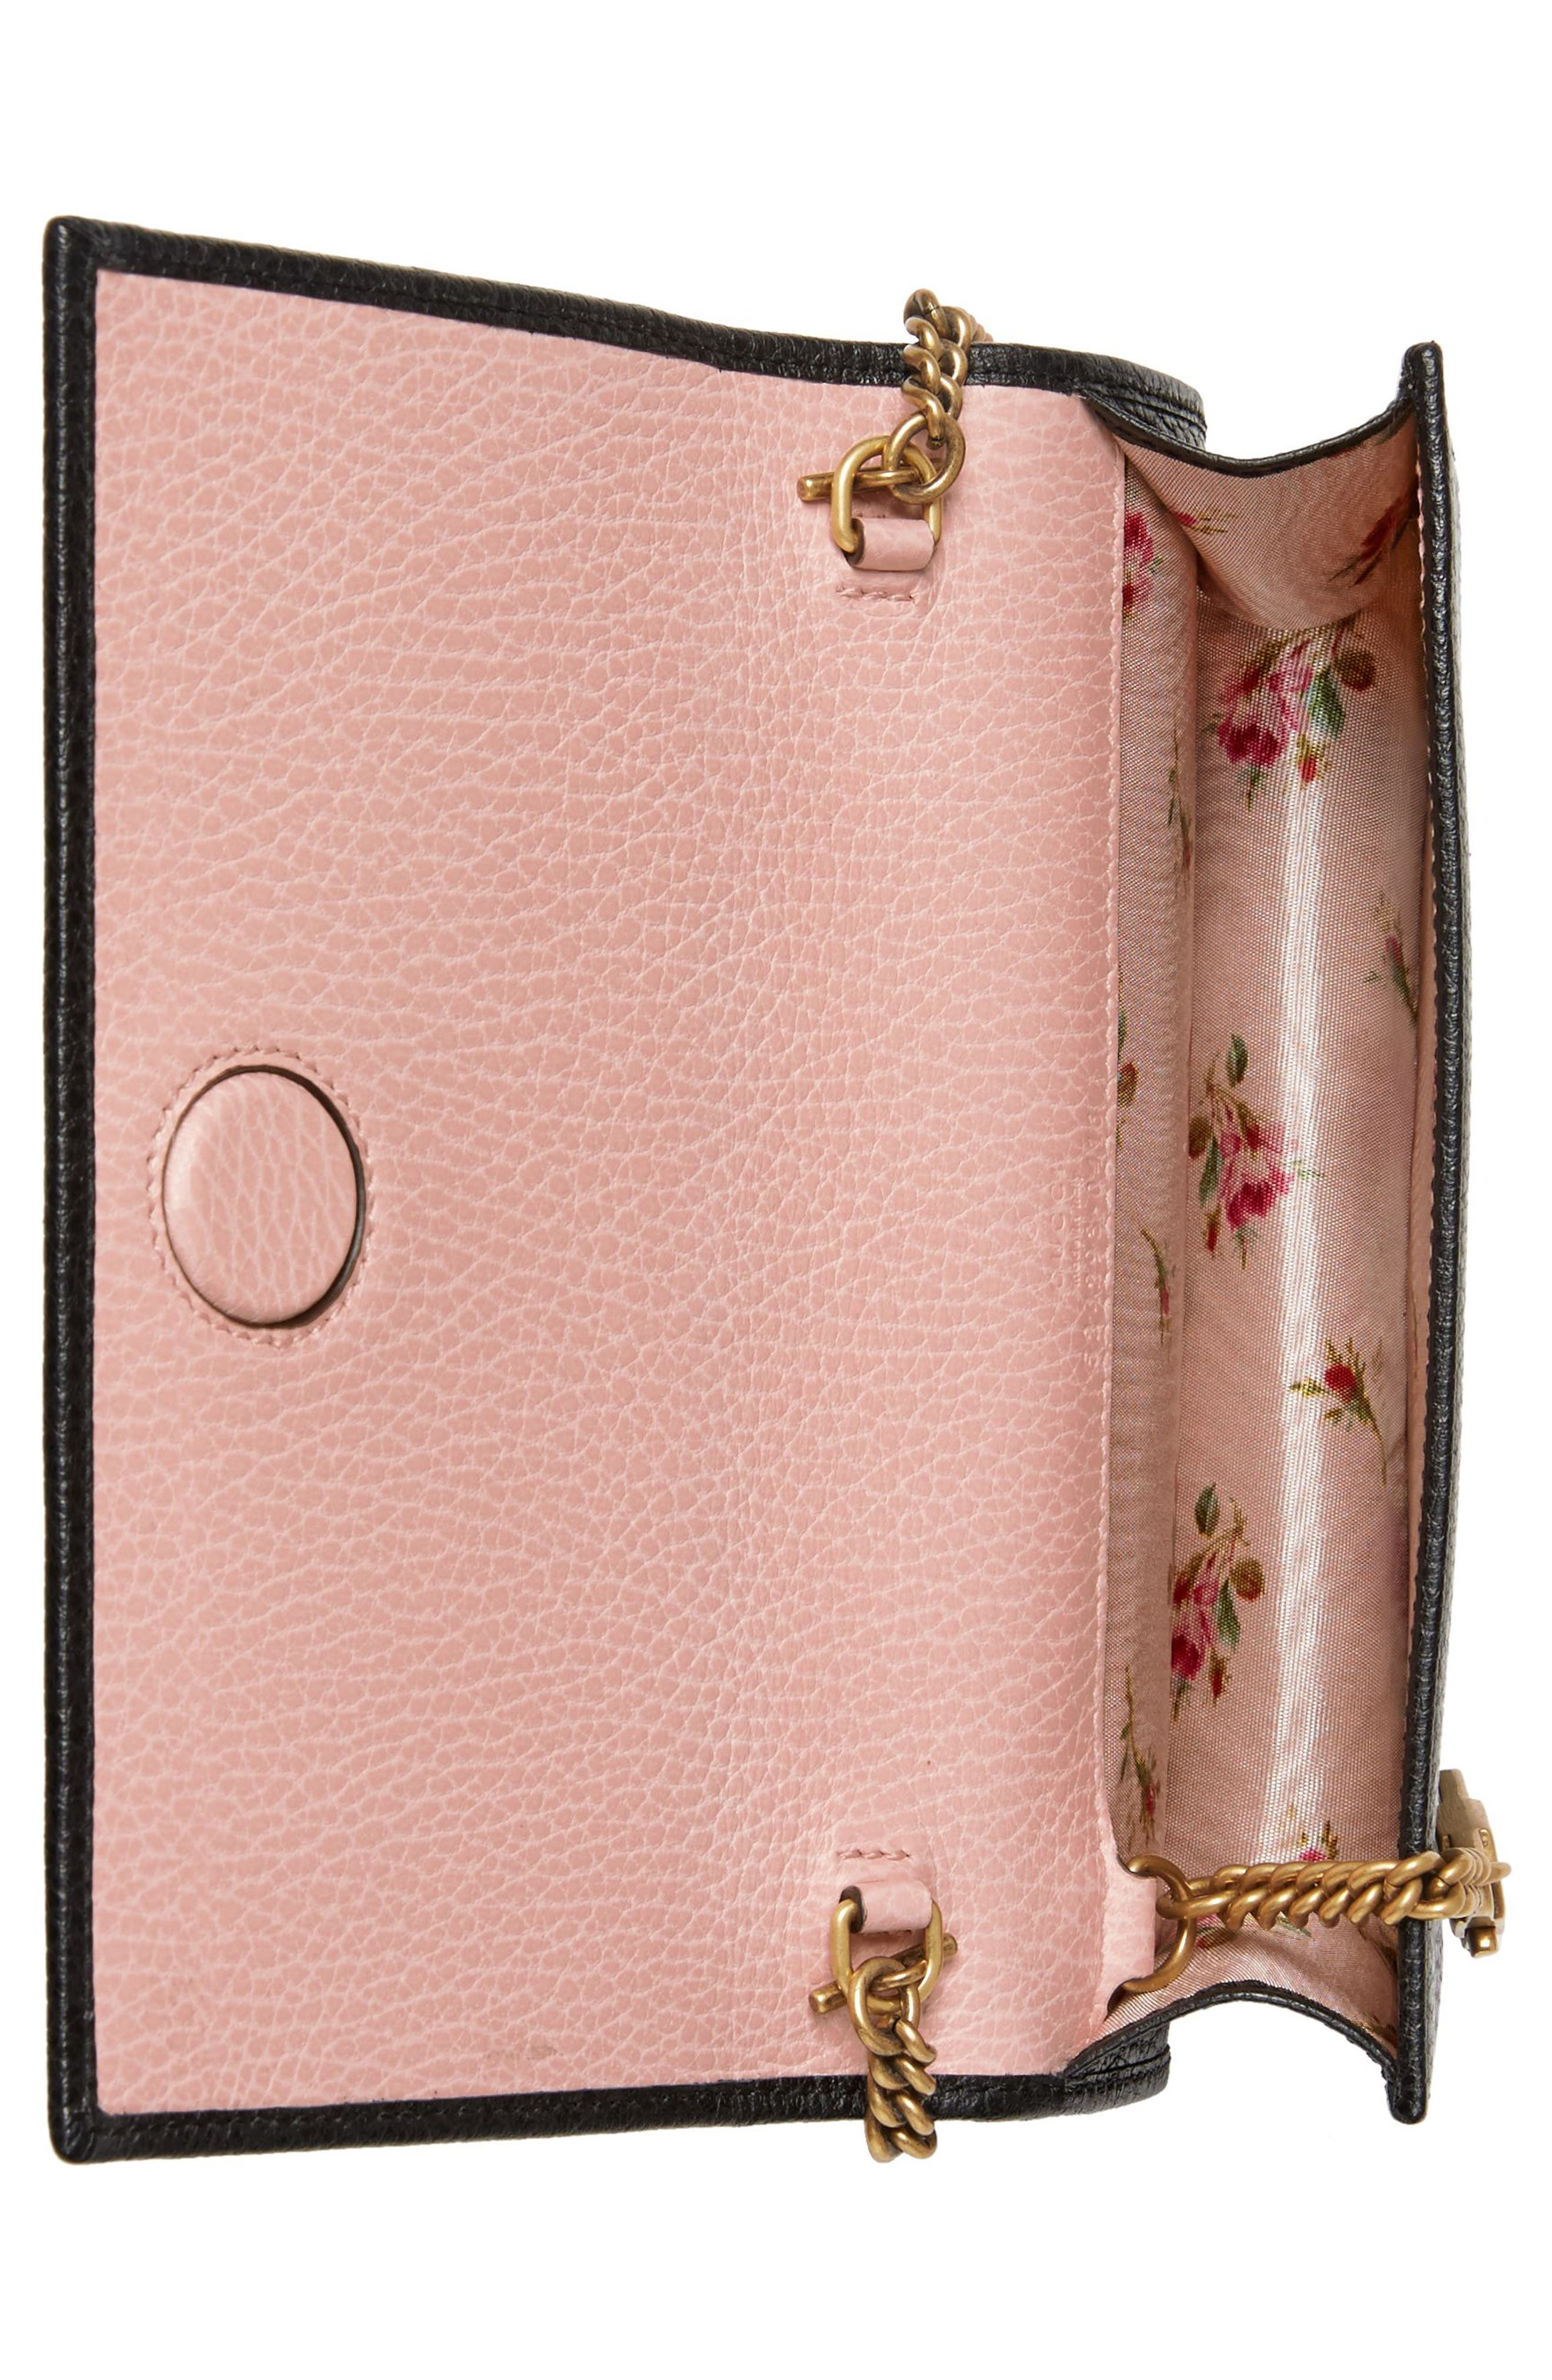 Fiocchino Leather Wallet on a Chain,                             Alternate thumbnail 2, color,                             001